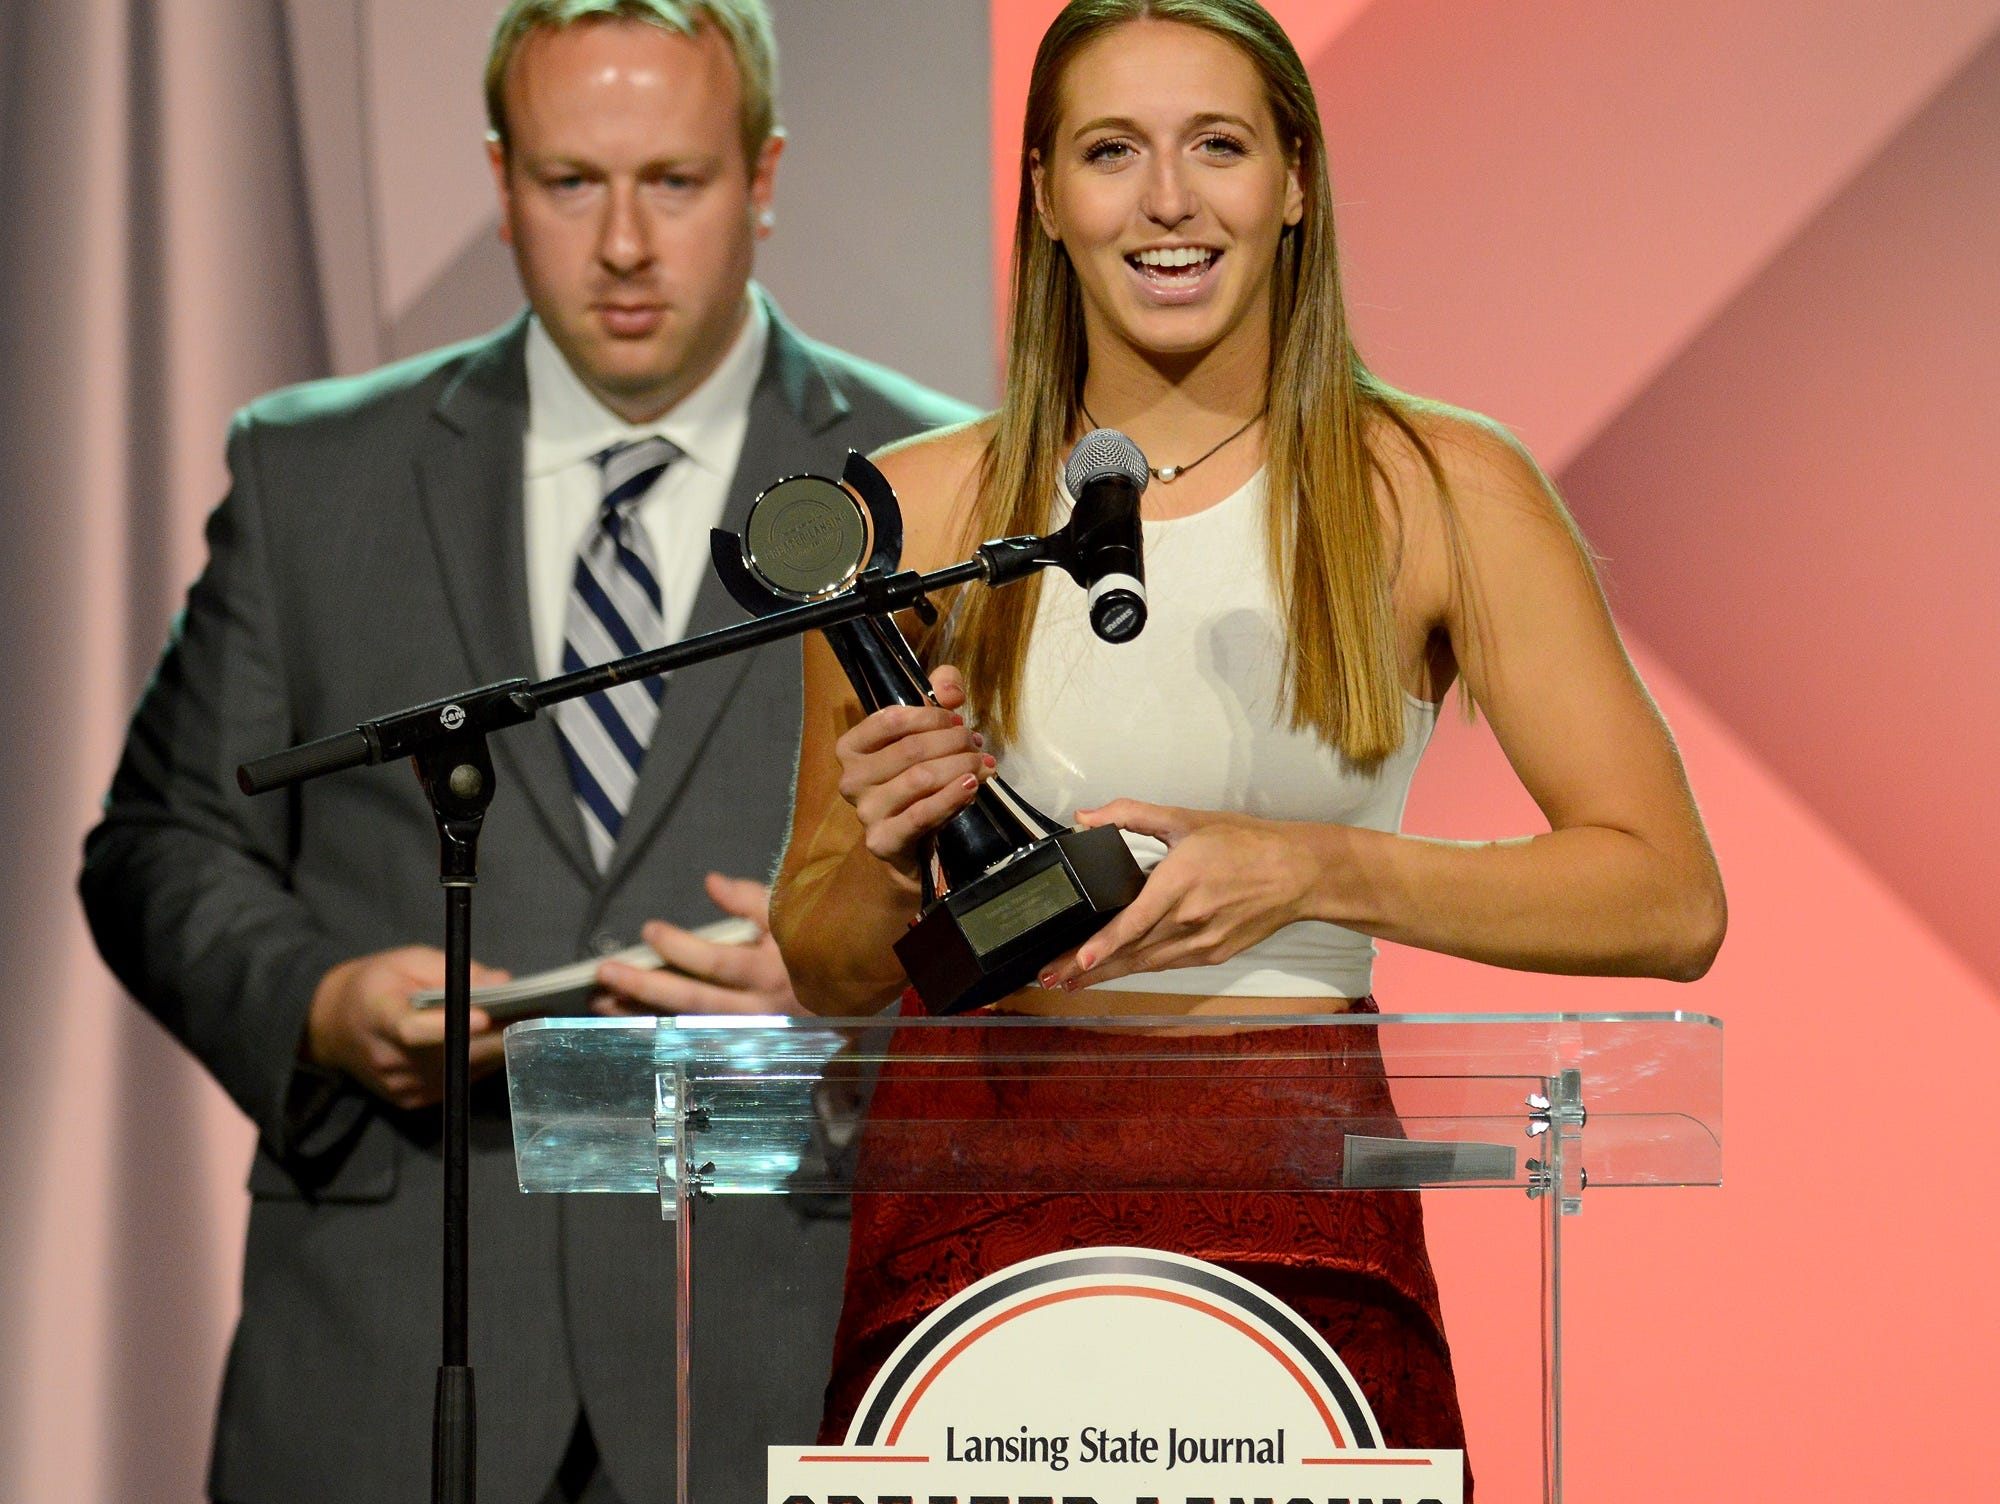 Angela Palmer, of Okemos, accepts the award for Girls Lacrosse Player of the Year at the Lansing State Journal's Greater Lansing Sports Awards Show show Tuesday, June 7, 2016 at the Lansing Center.